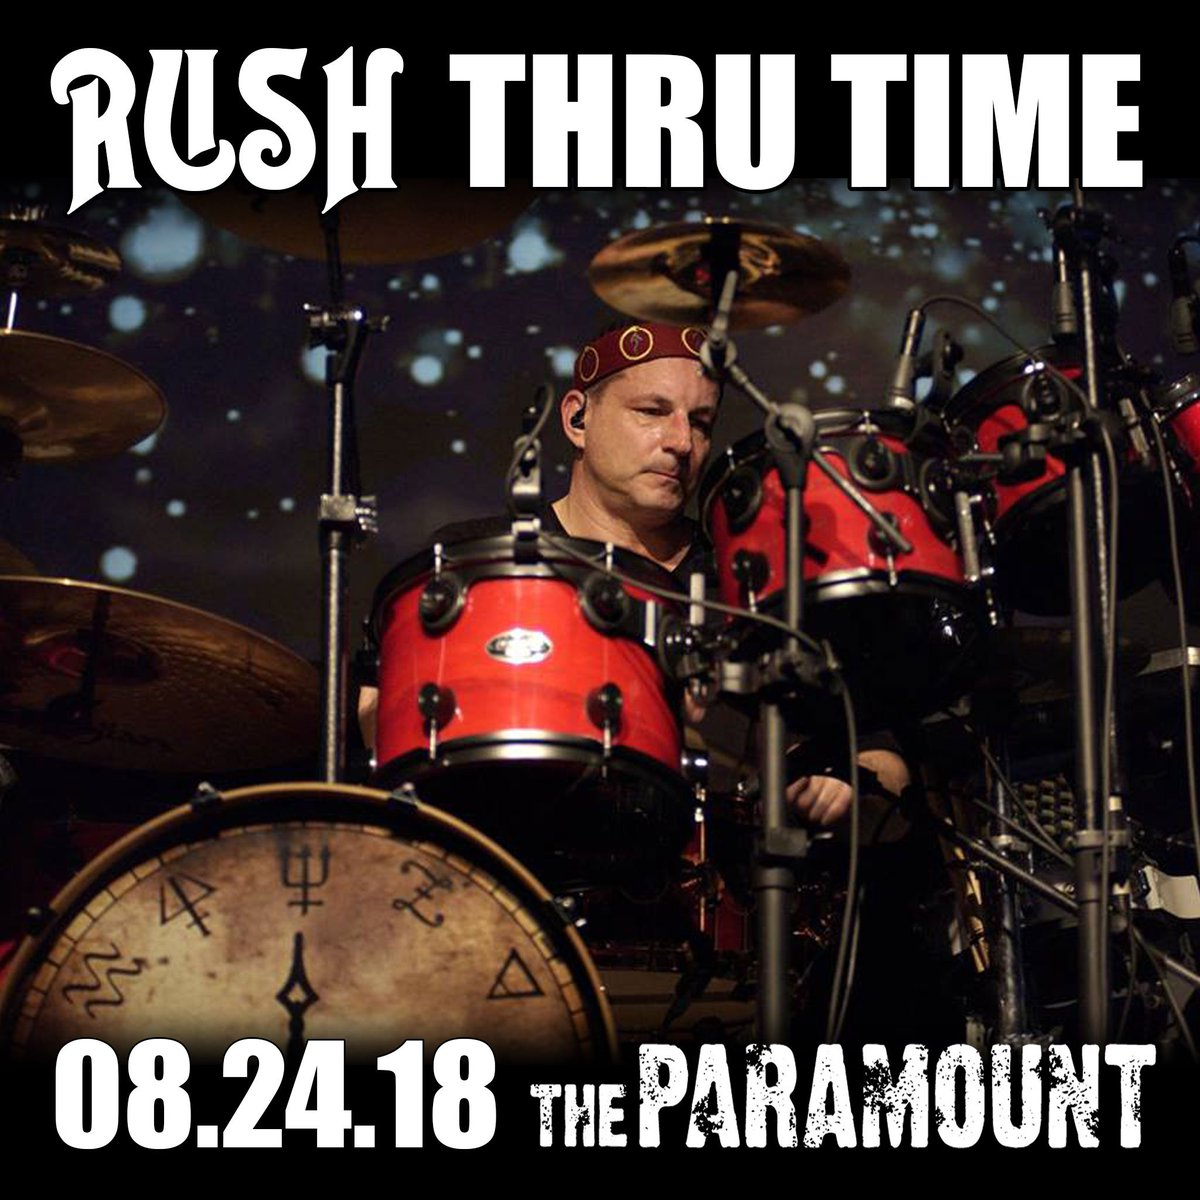 RUSH FANS...come celebrate the 40+ year legacy of Rush in one amazing show! And with tickets only $15-$30, you can introduce your kids to this timeless music! RUSH THRU TIME @paramountny Huntington, NY on Friday, Aug 24, 2018. Get your tickets TODAY at:  http:// ow.ly/G9Ke30kBYHE  &nbsp;  <br>http://pic.twitter.com/jSaFINCKUS